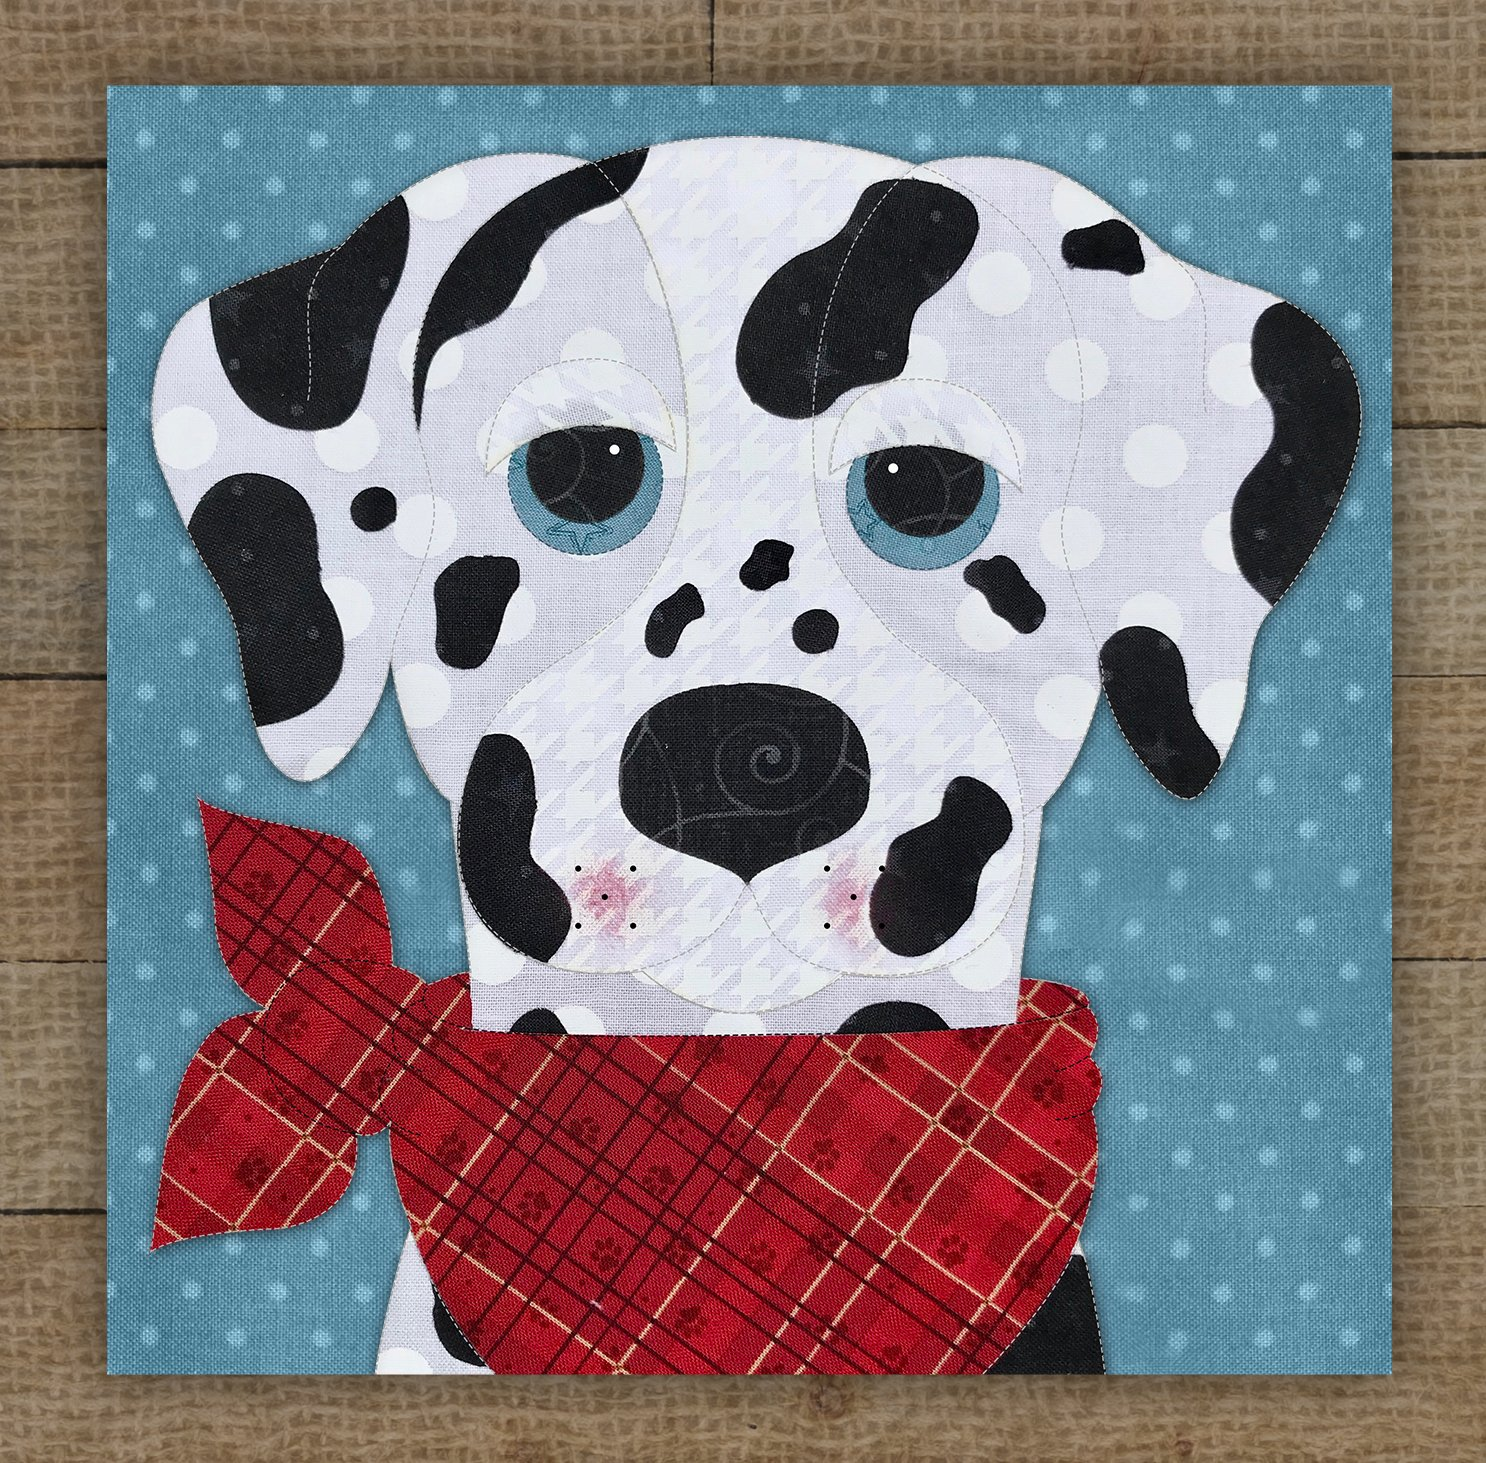 Dalmatian 2 Precut Fused Applique Kit